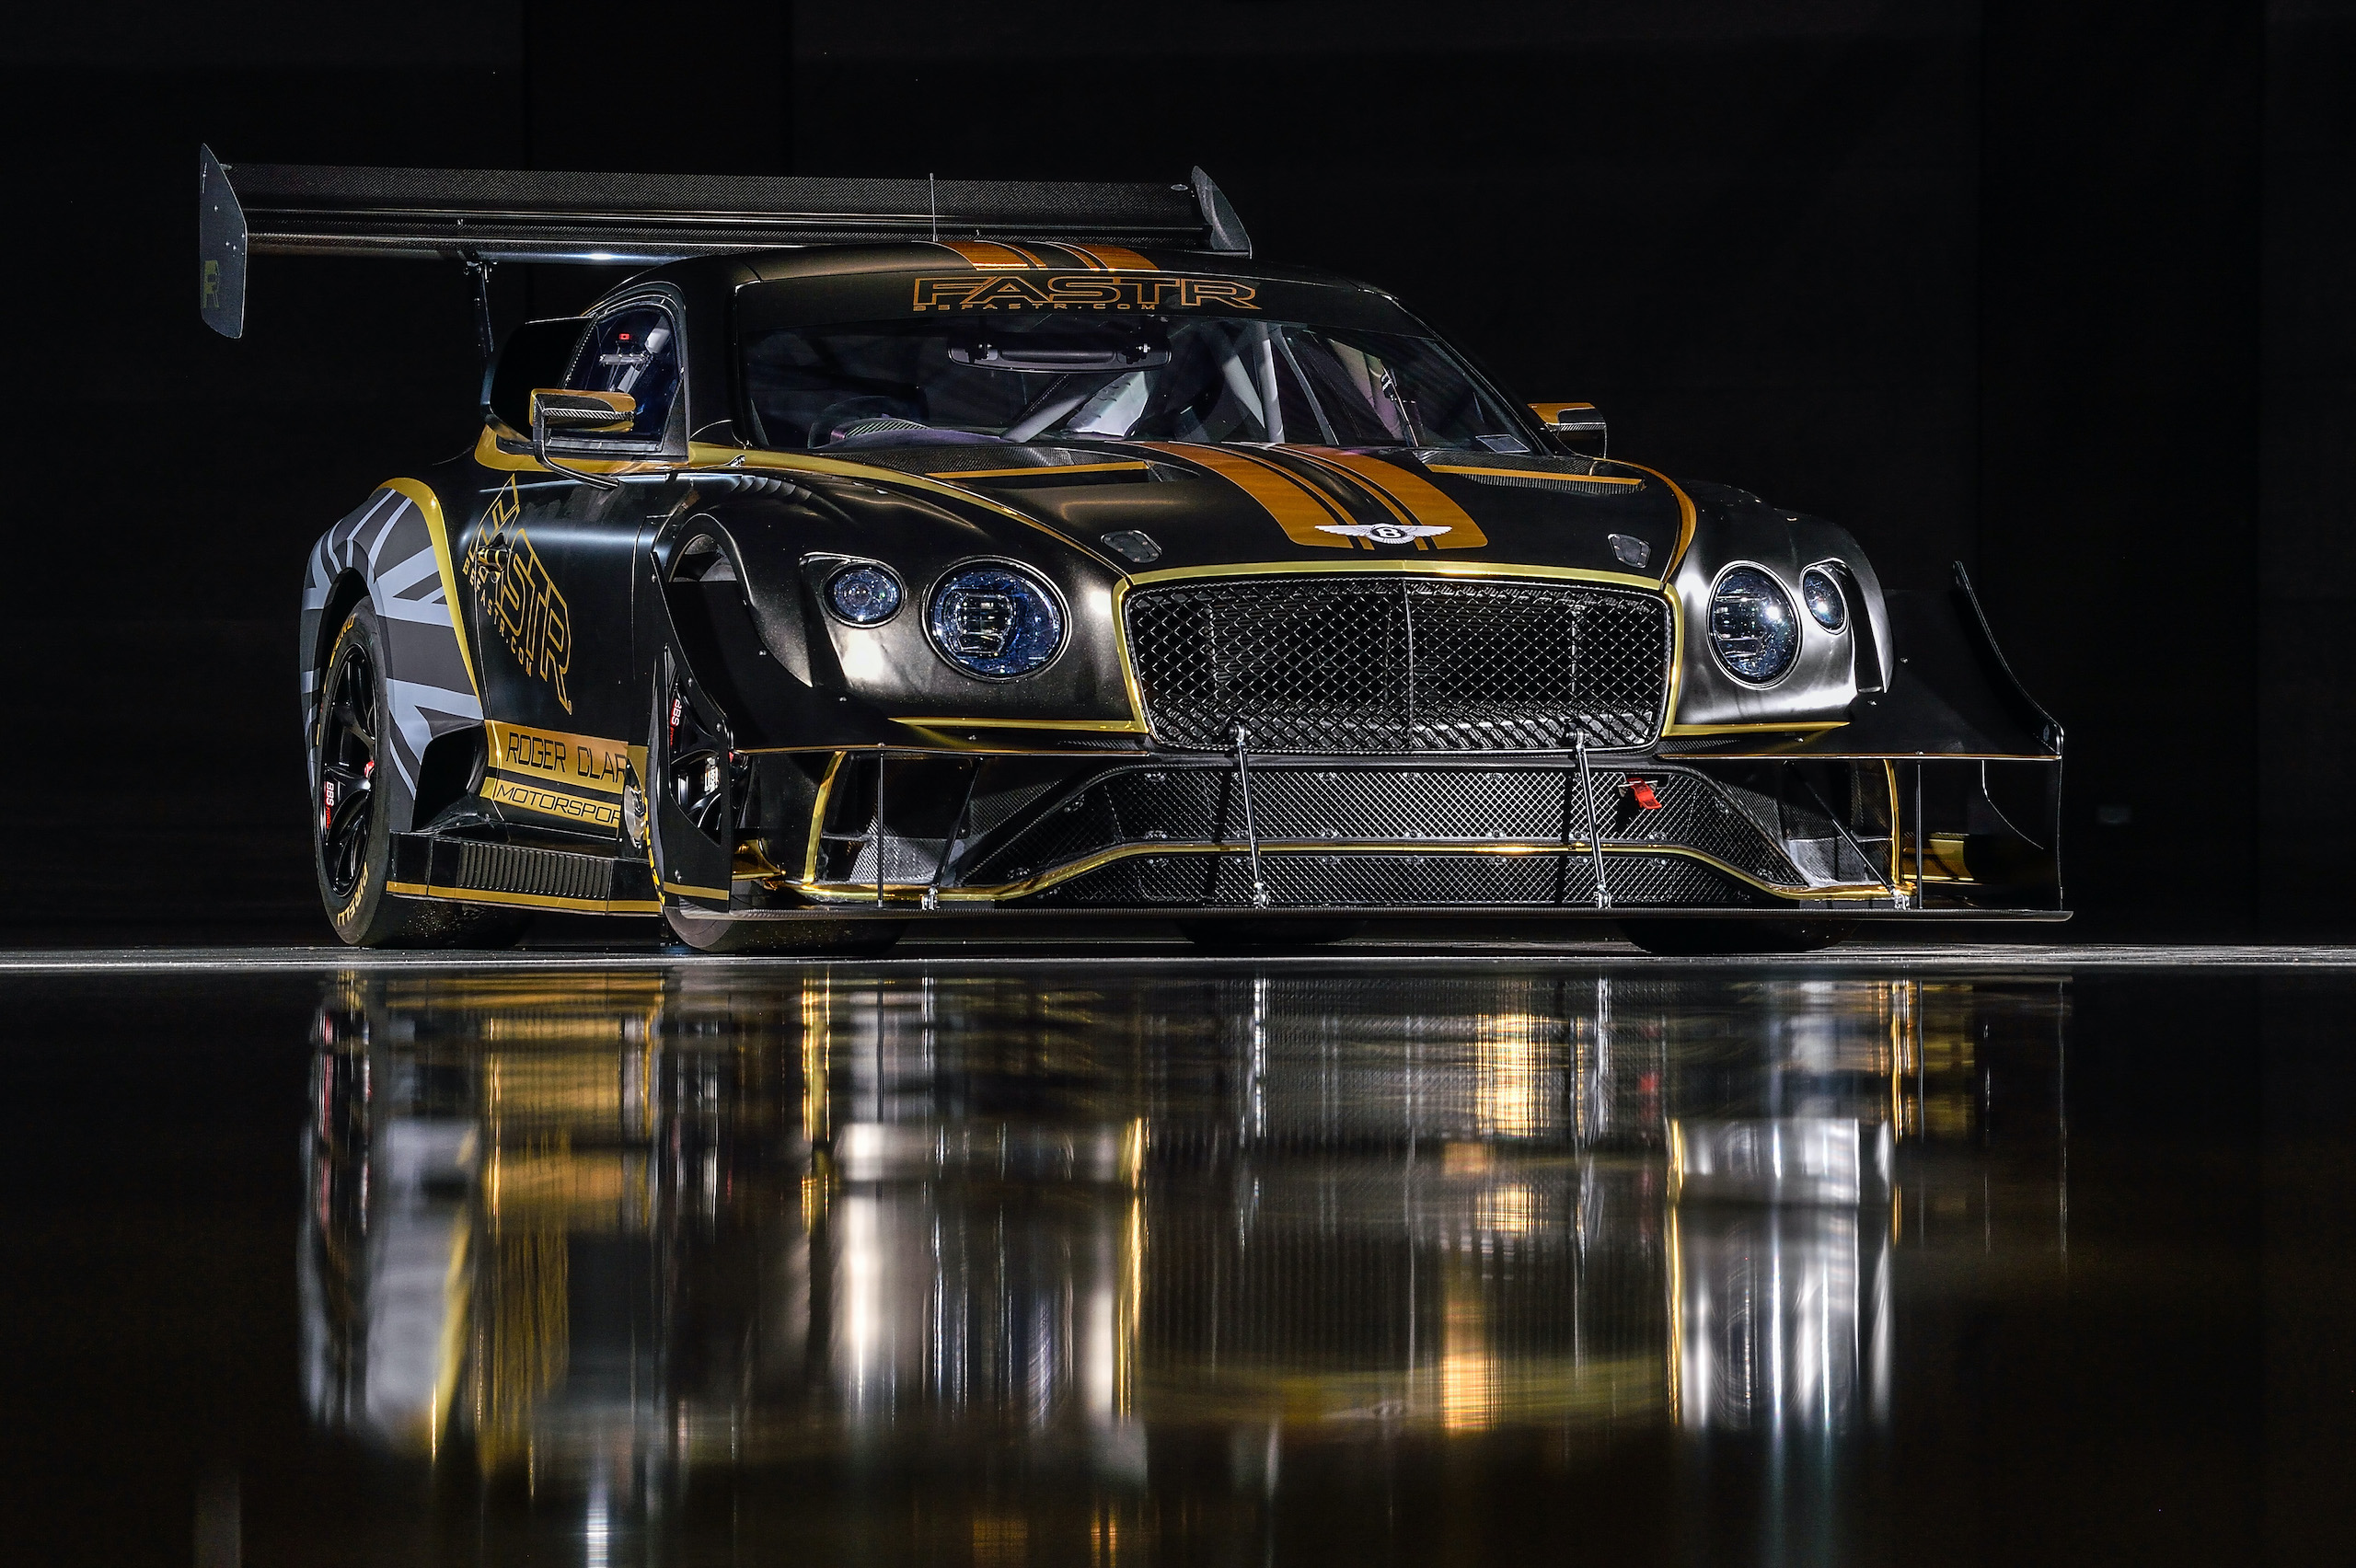 Bentley will attack Pikes Peak with a heavily modified Continental GT3 racer